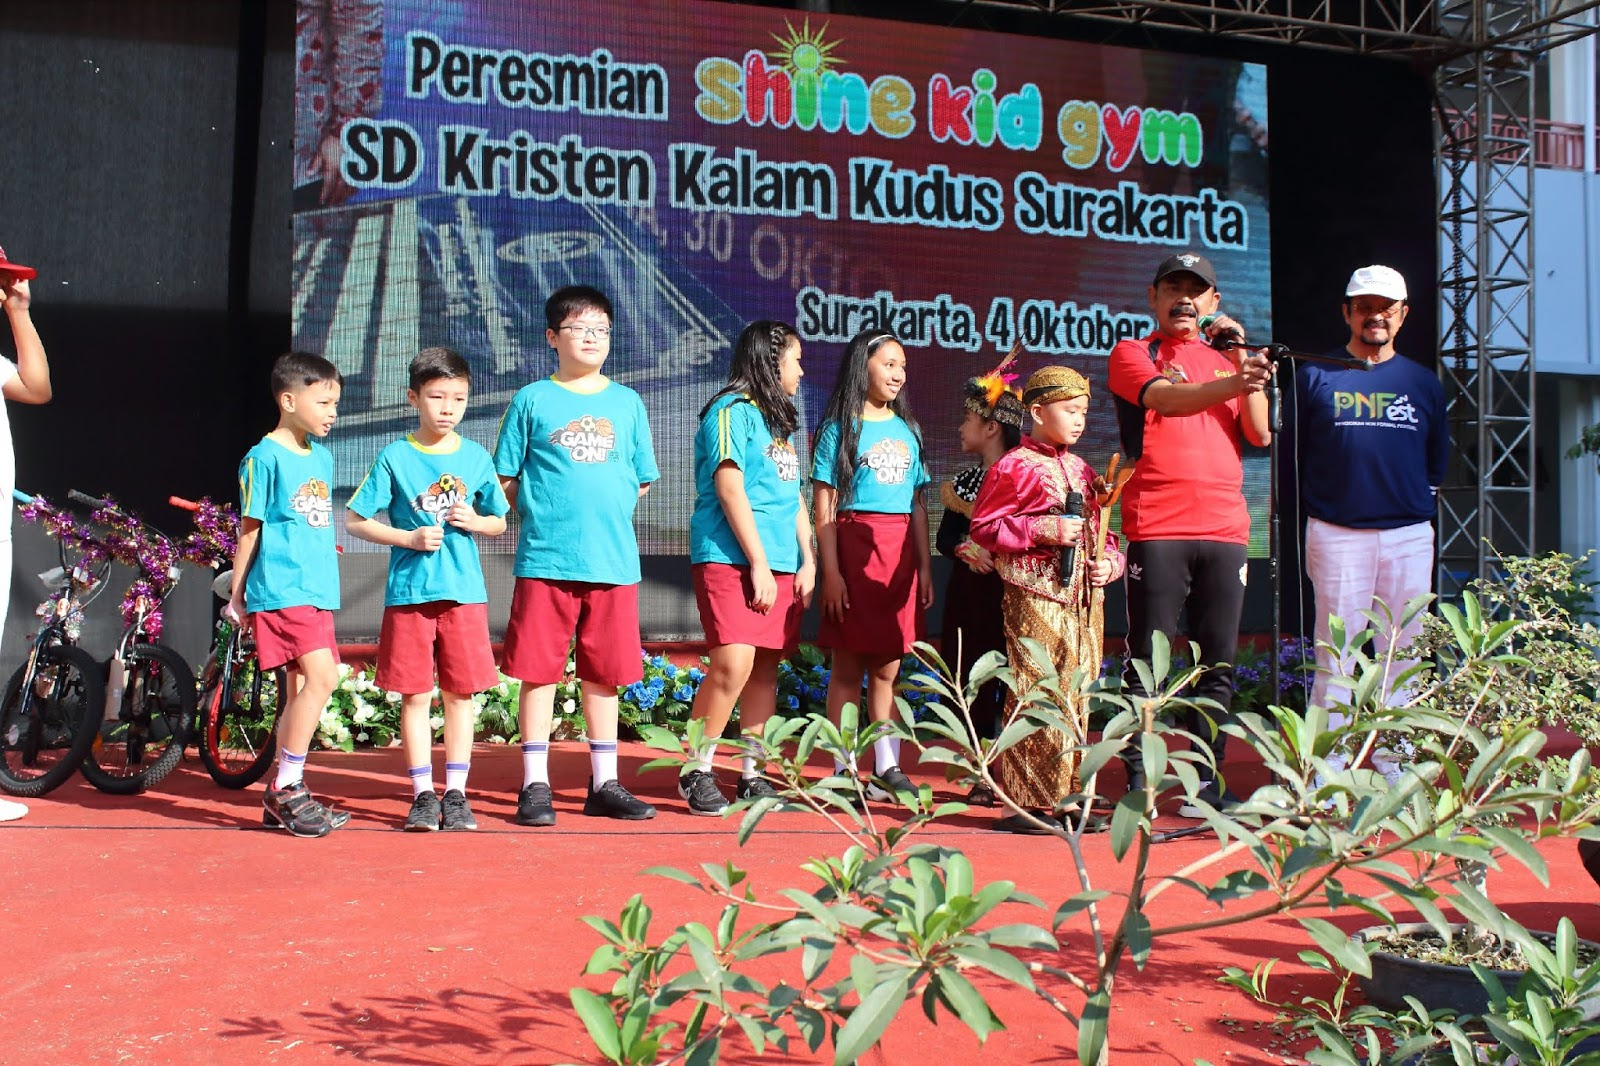 Peresmian Shine Kid Gym SD Kalam Kudus